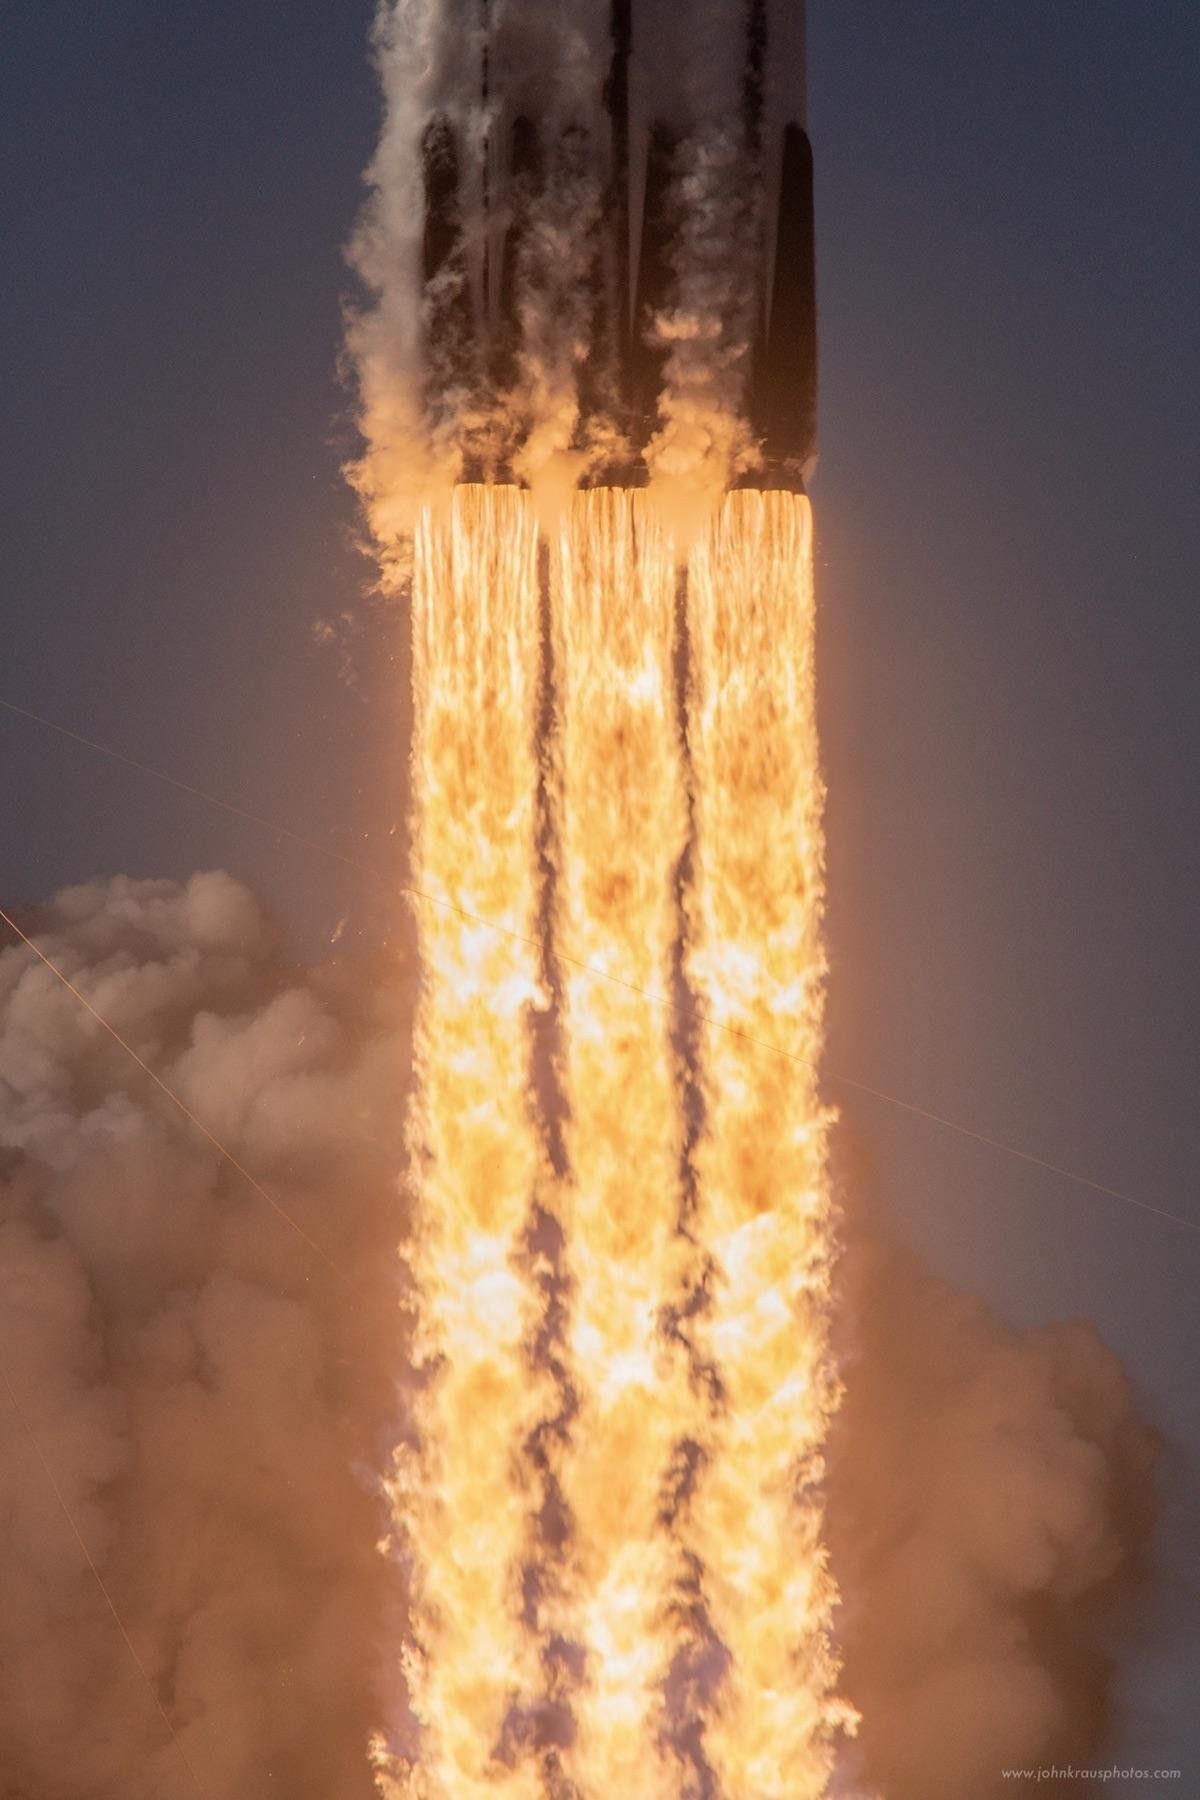 Spacex Falcon 9 Saocom 1a 4k Wallpapers Spacex Wallpaper Space Iphone Wallpaper